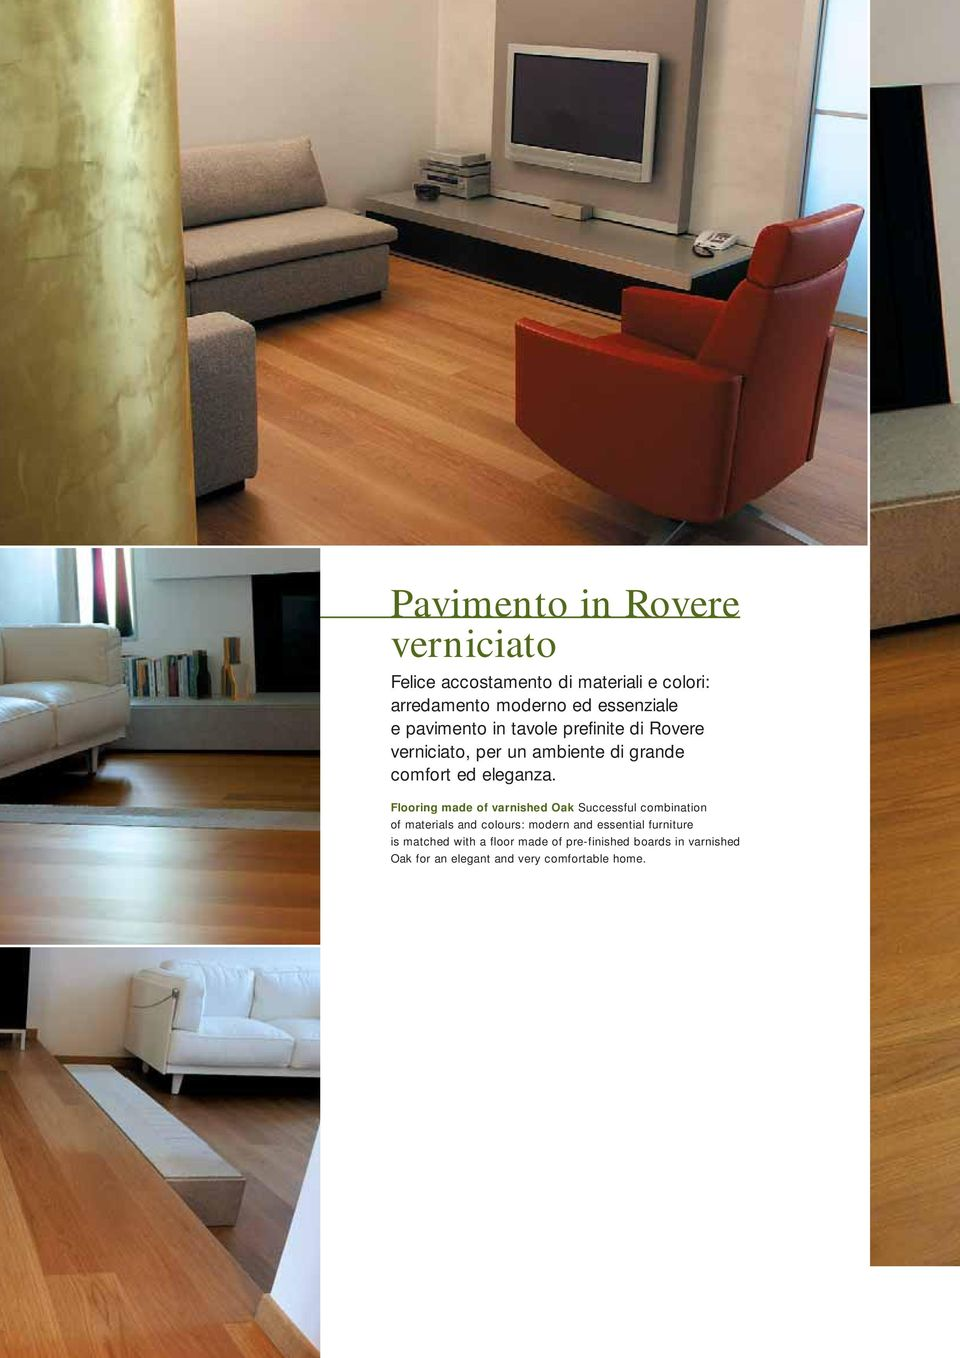 Flooring made of varnished Oak Successful combination of materials and colours: modern and essential